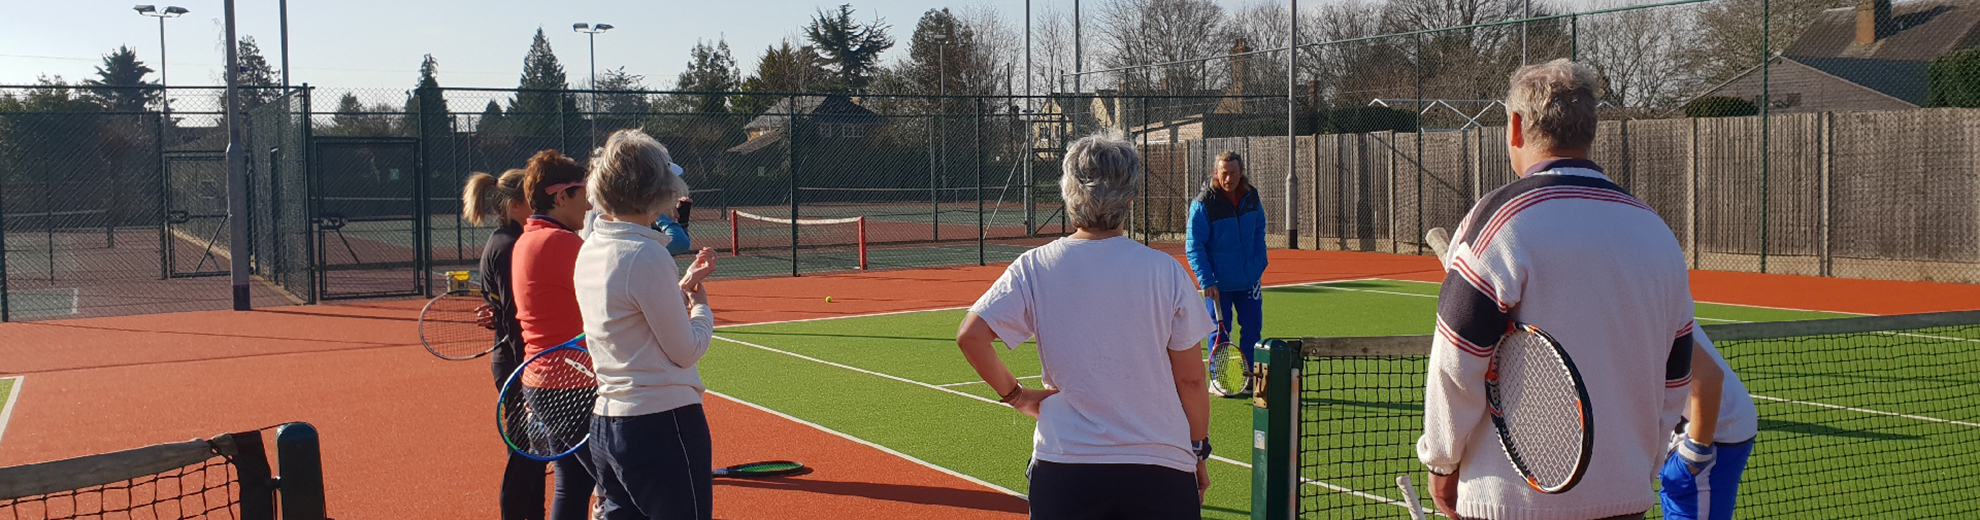 Croxley Tennis Club - Meet the Team